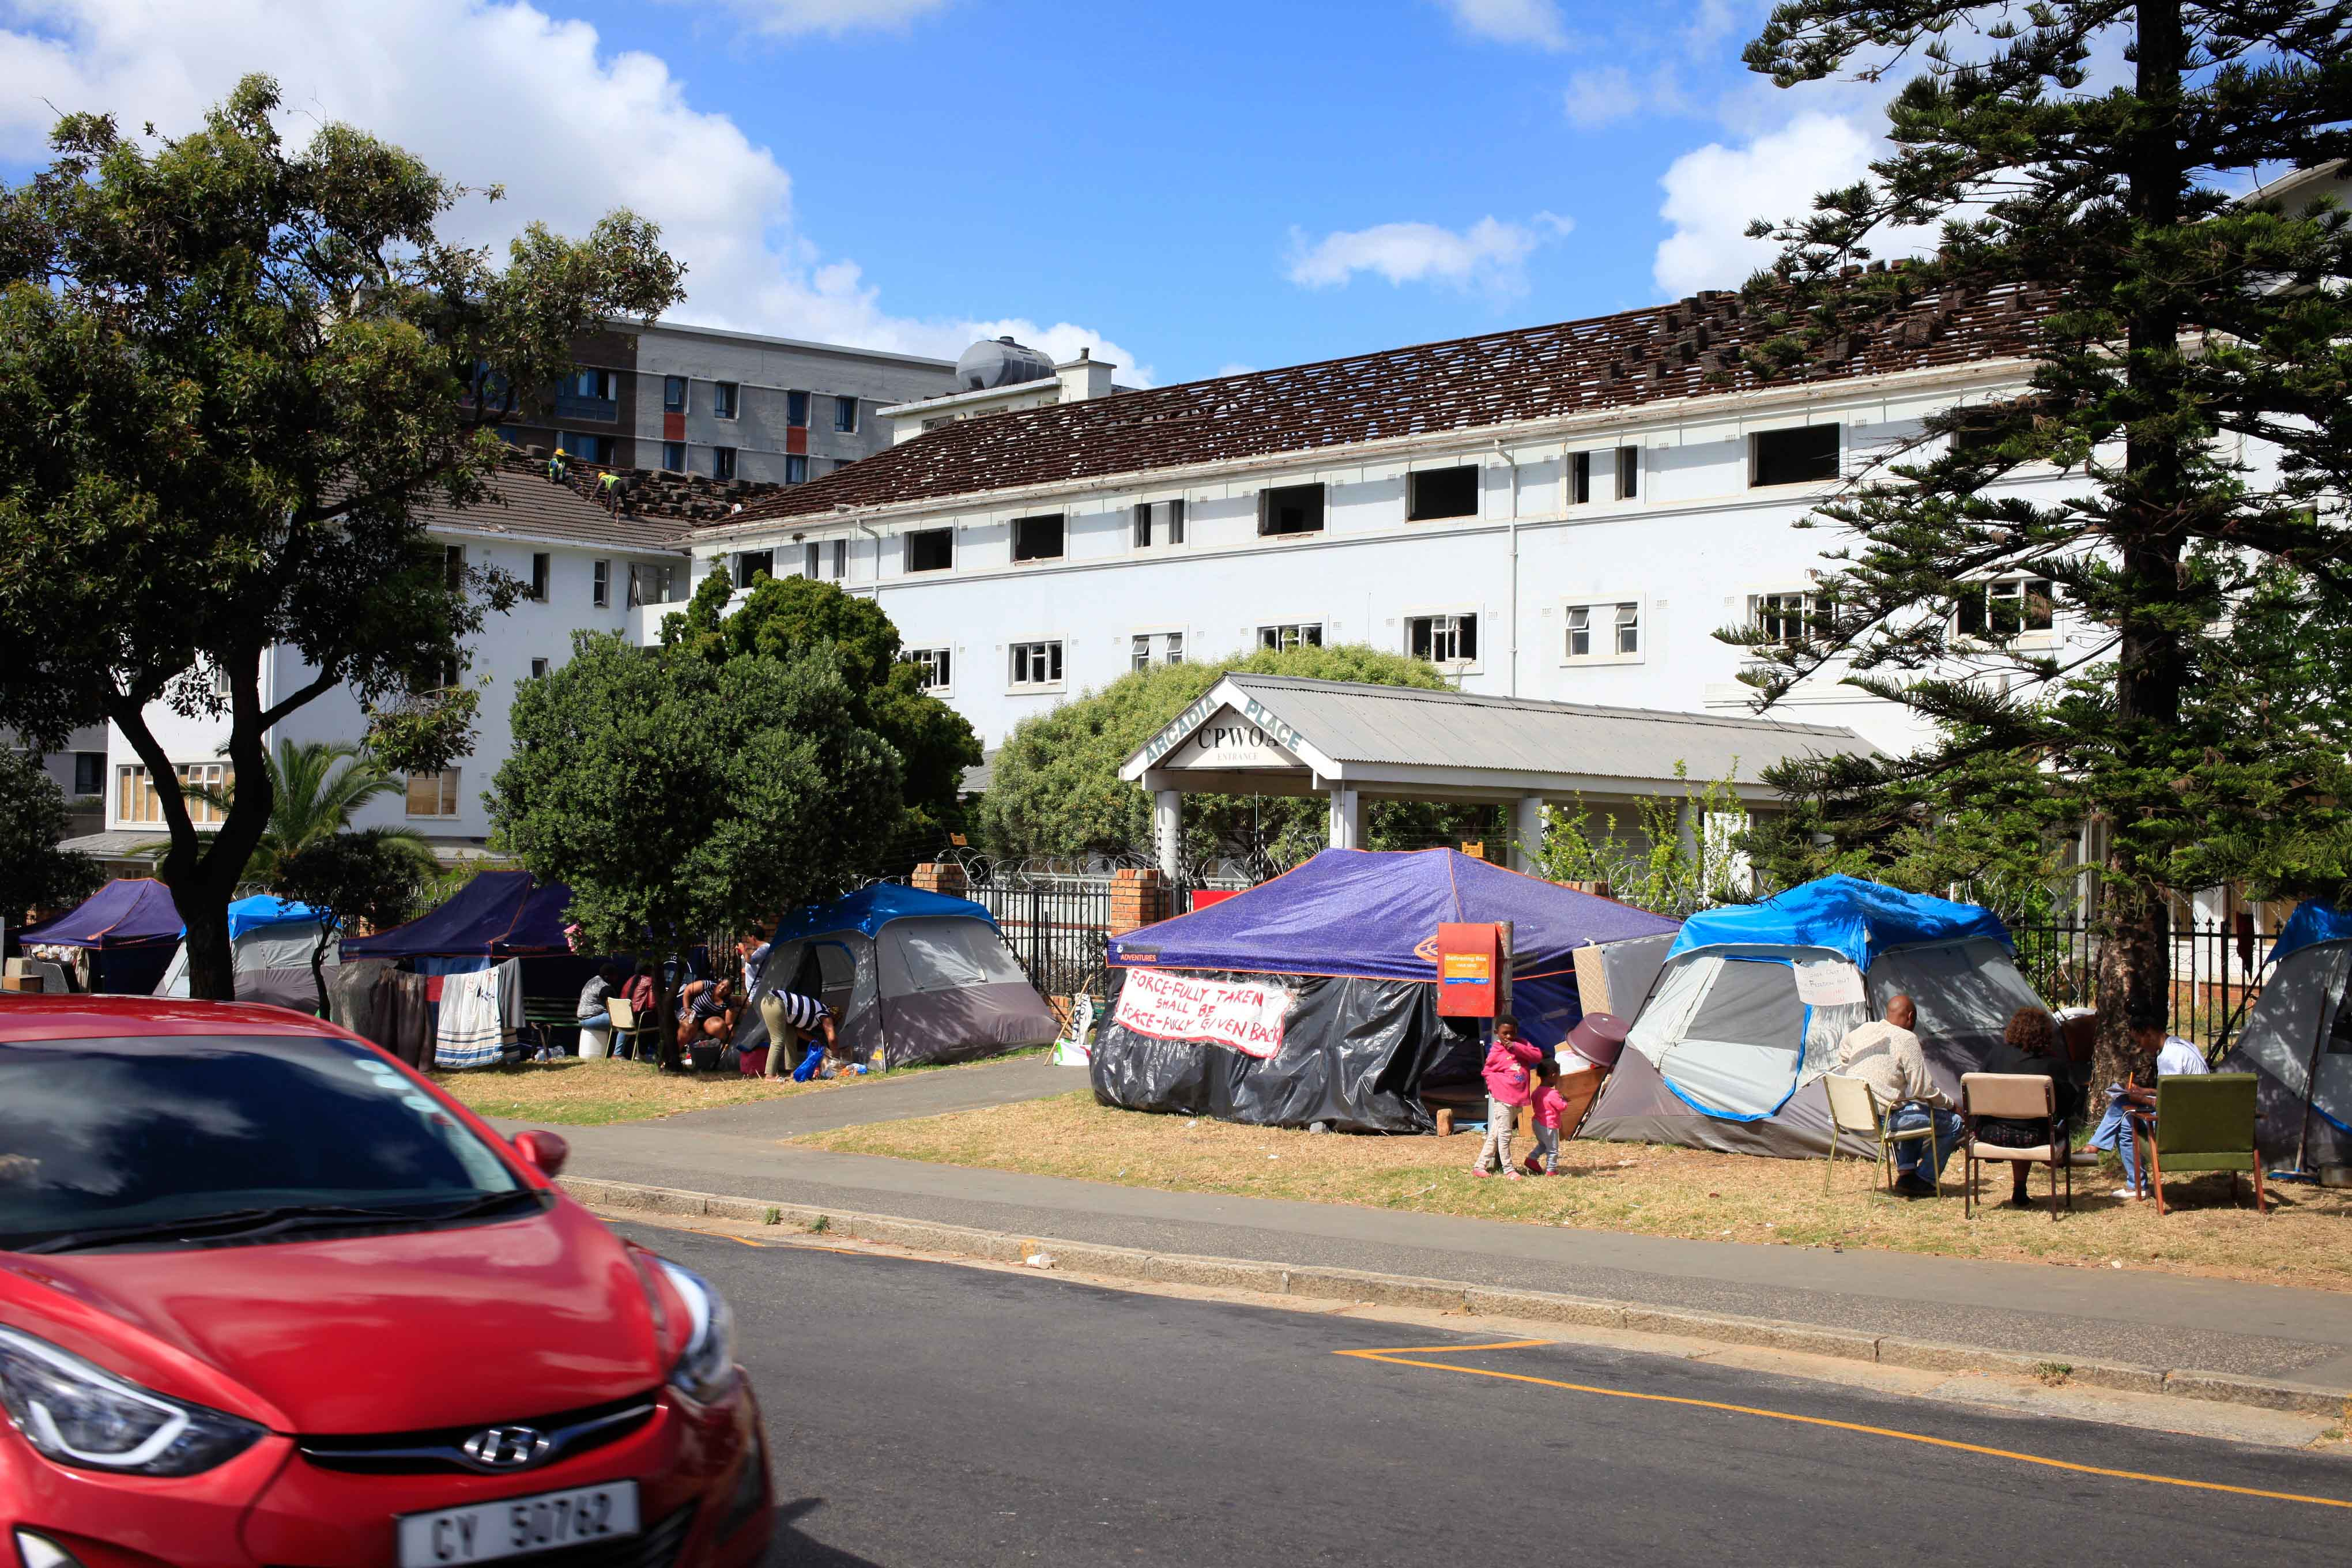 21 October 2019: The group of occupiers evicted from Arcadia Place in Observatory, Cape Town, in their donated tents.